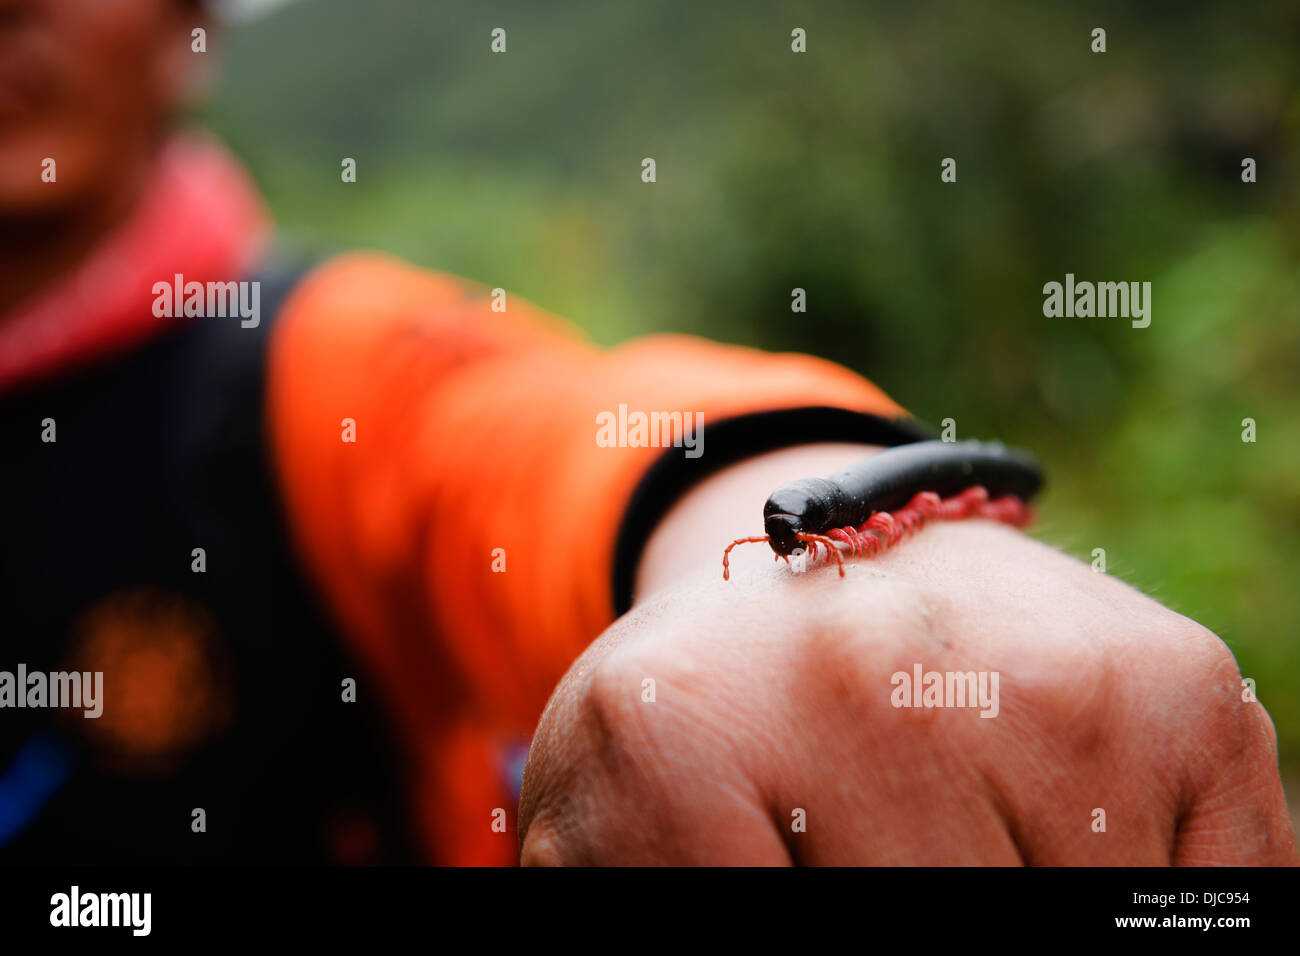 A red-legged millipede - a familiar scenery along the route of the Salkantay Trek in the Cuzco Region of Peru. - Stock Image